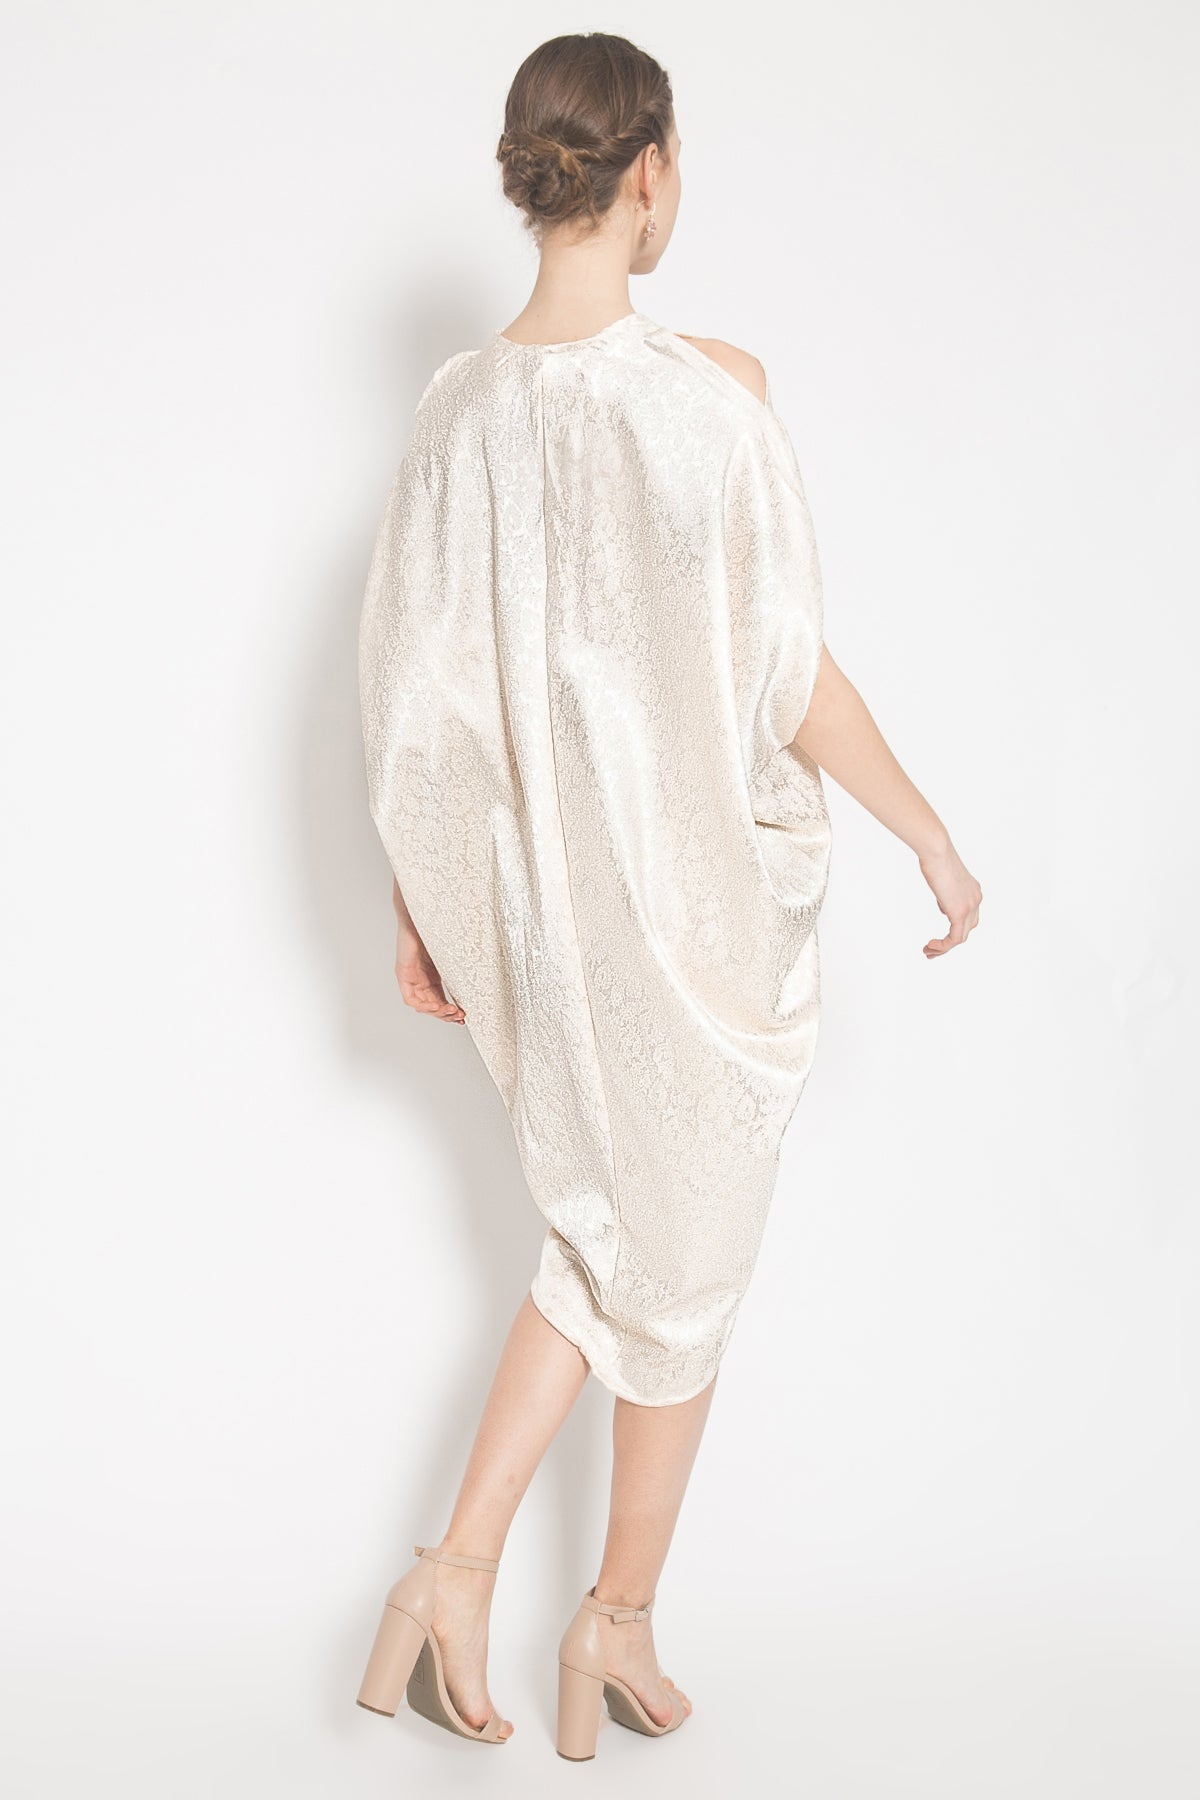 Syla Dress in Off White